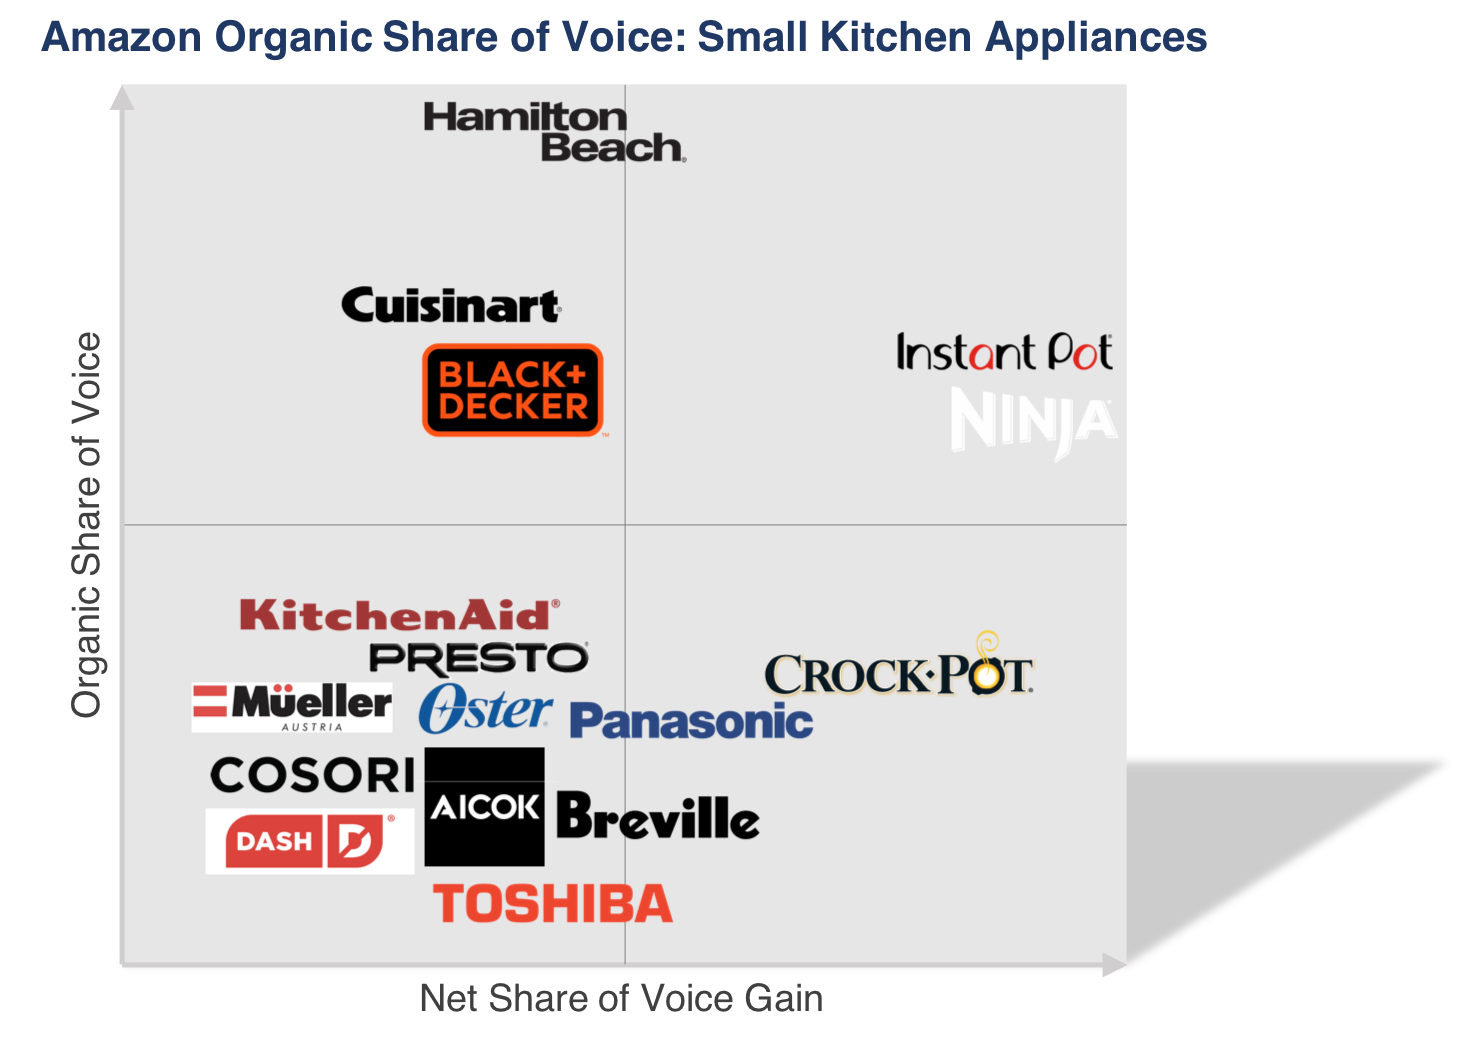 Small_Appliances_Share_of_Voice